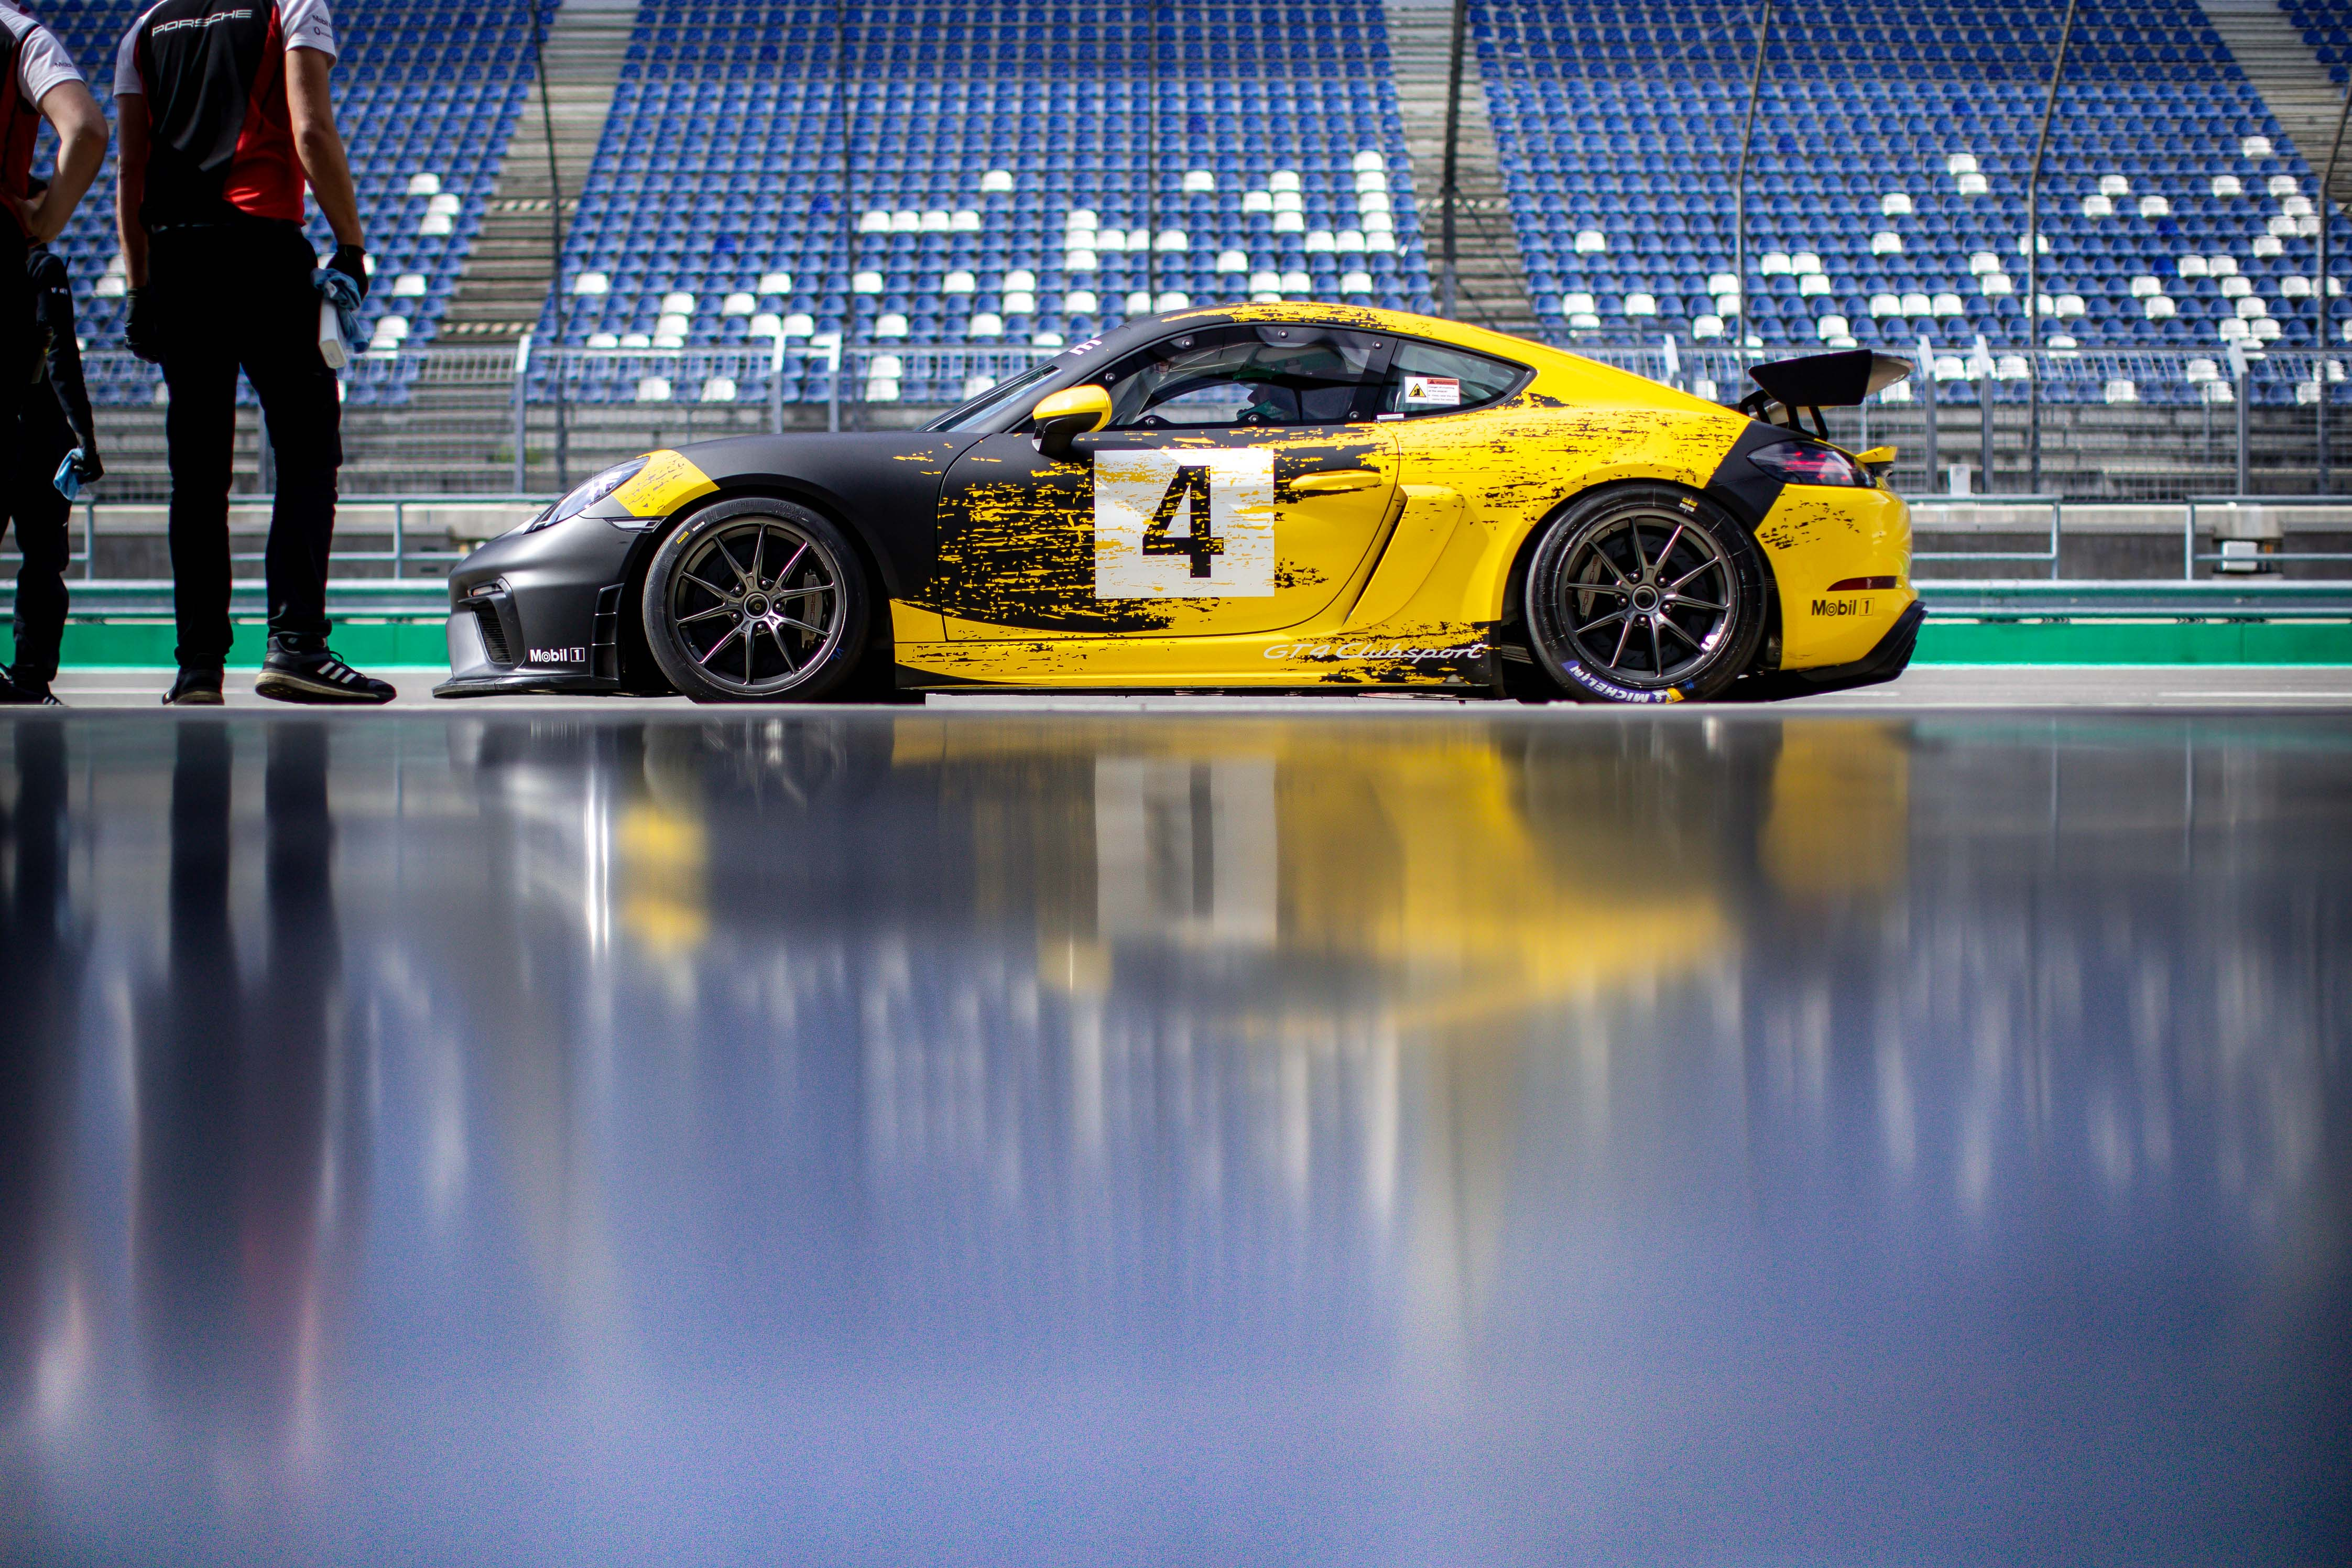 image of the Swiss Racer in yellow and black with the number 4 on the side